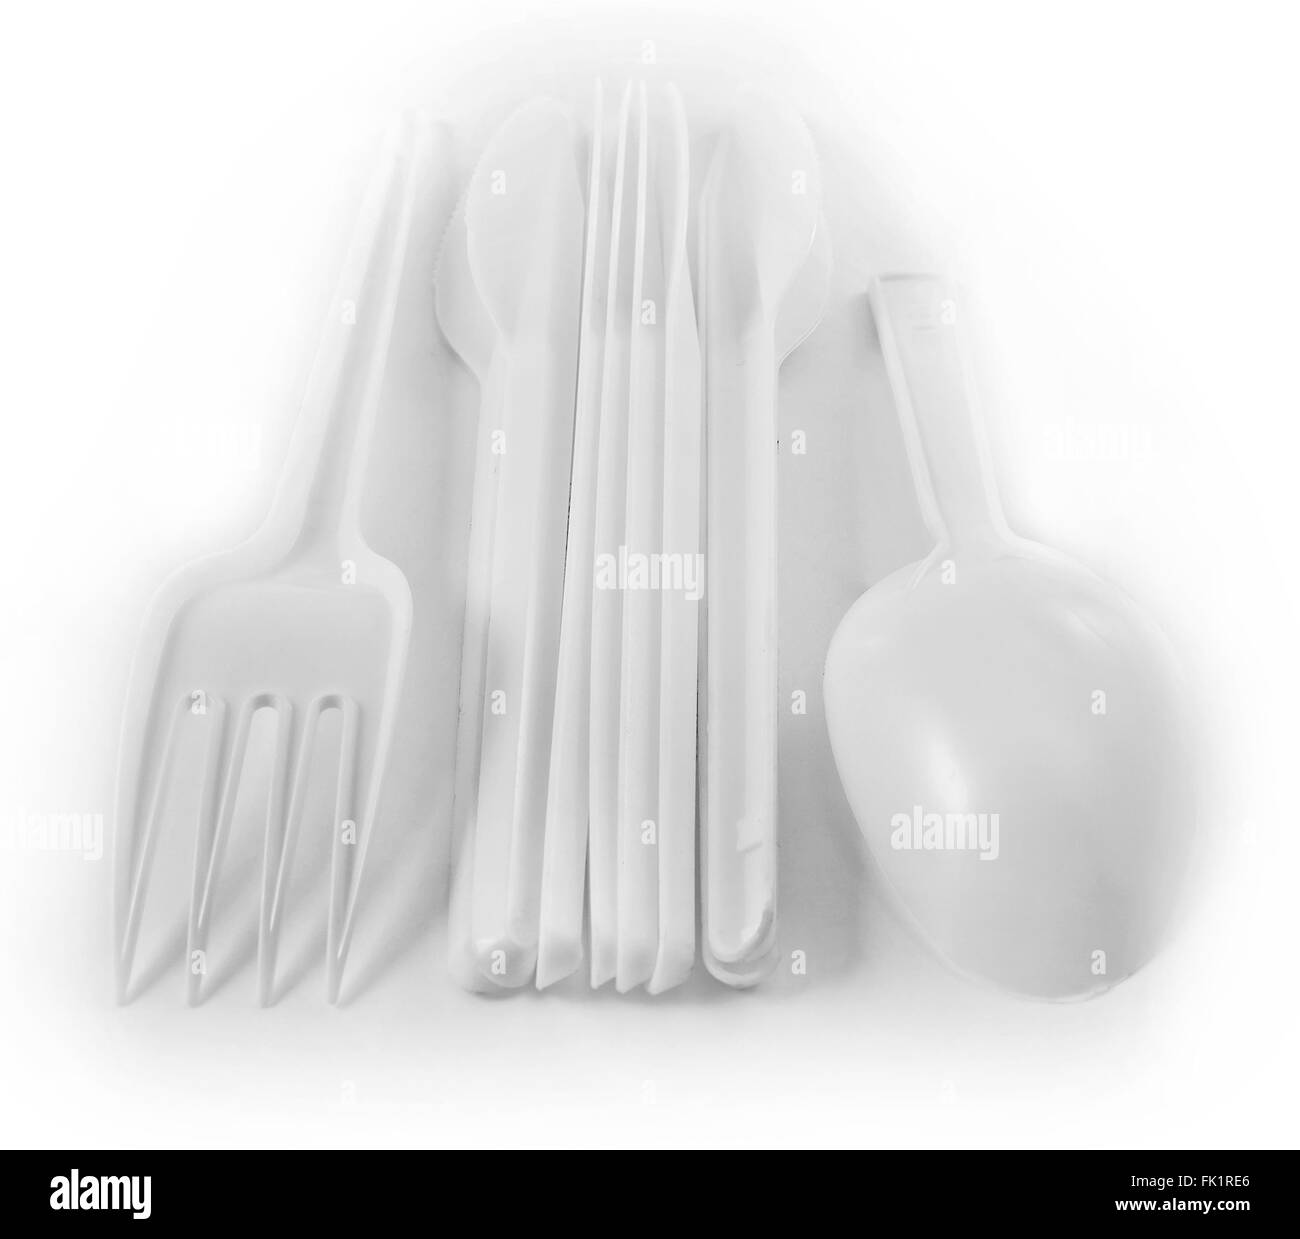 plastic spoons and forks - Stock Image